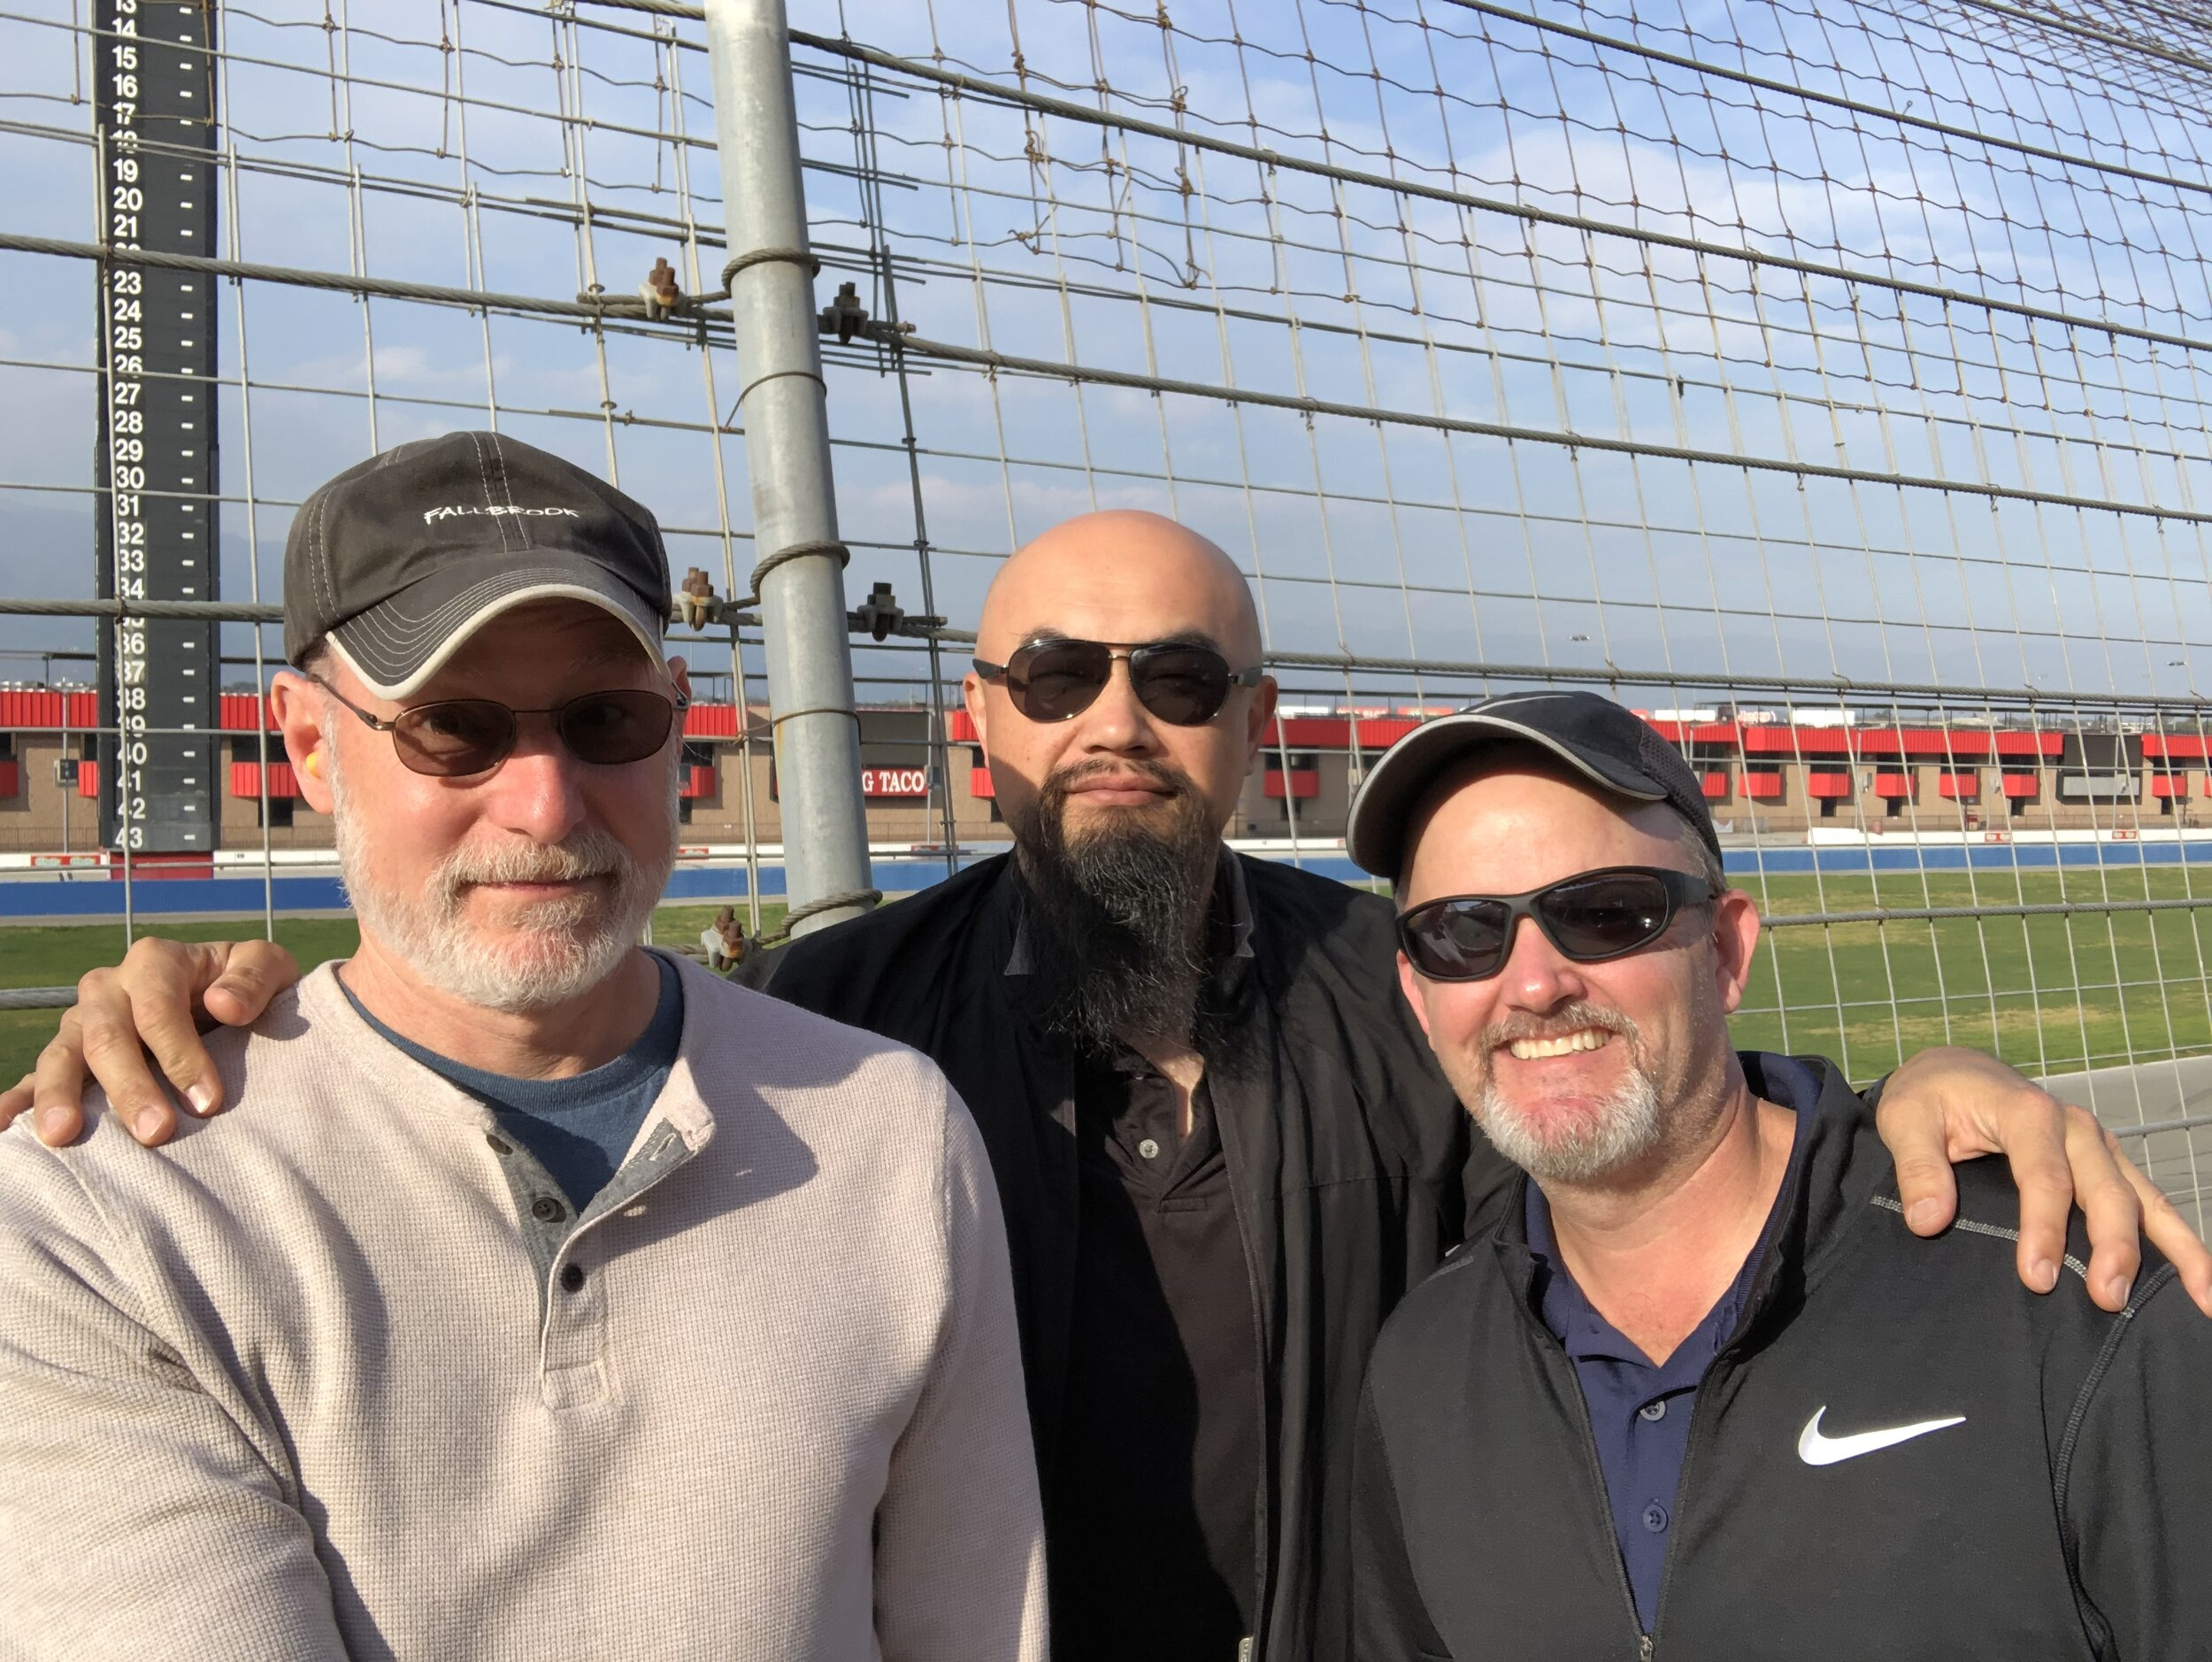 Sound Designer Aaron Marks, Watson Wu, and 704 Games Producer Sean Wilson at Auto Club Race track in Fontana, California